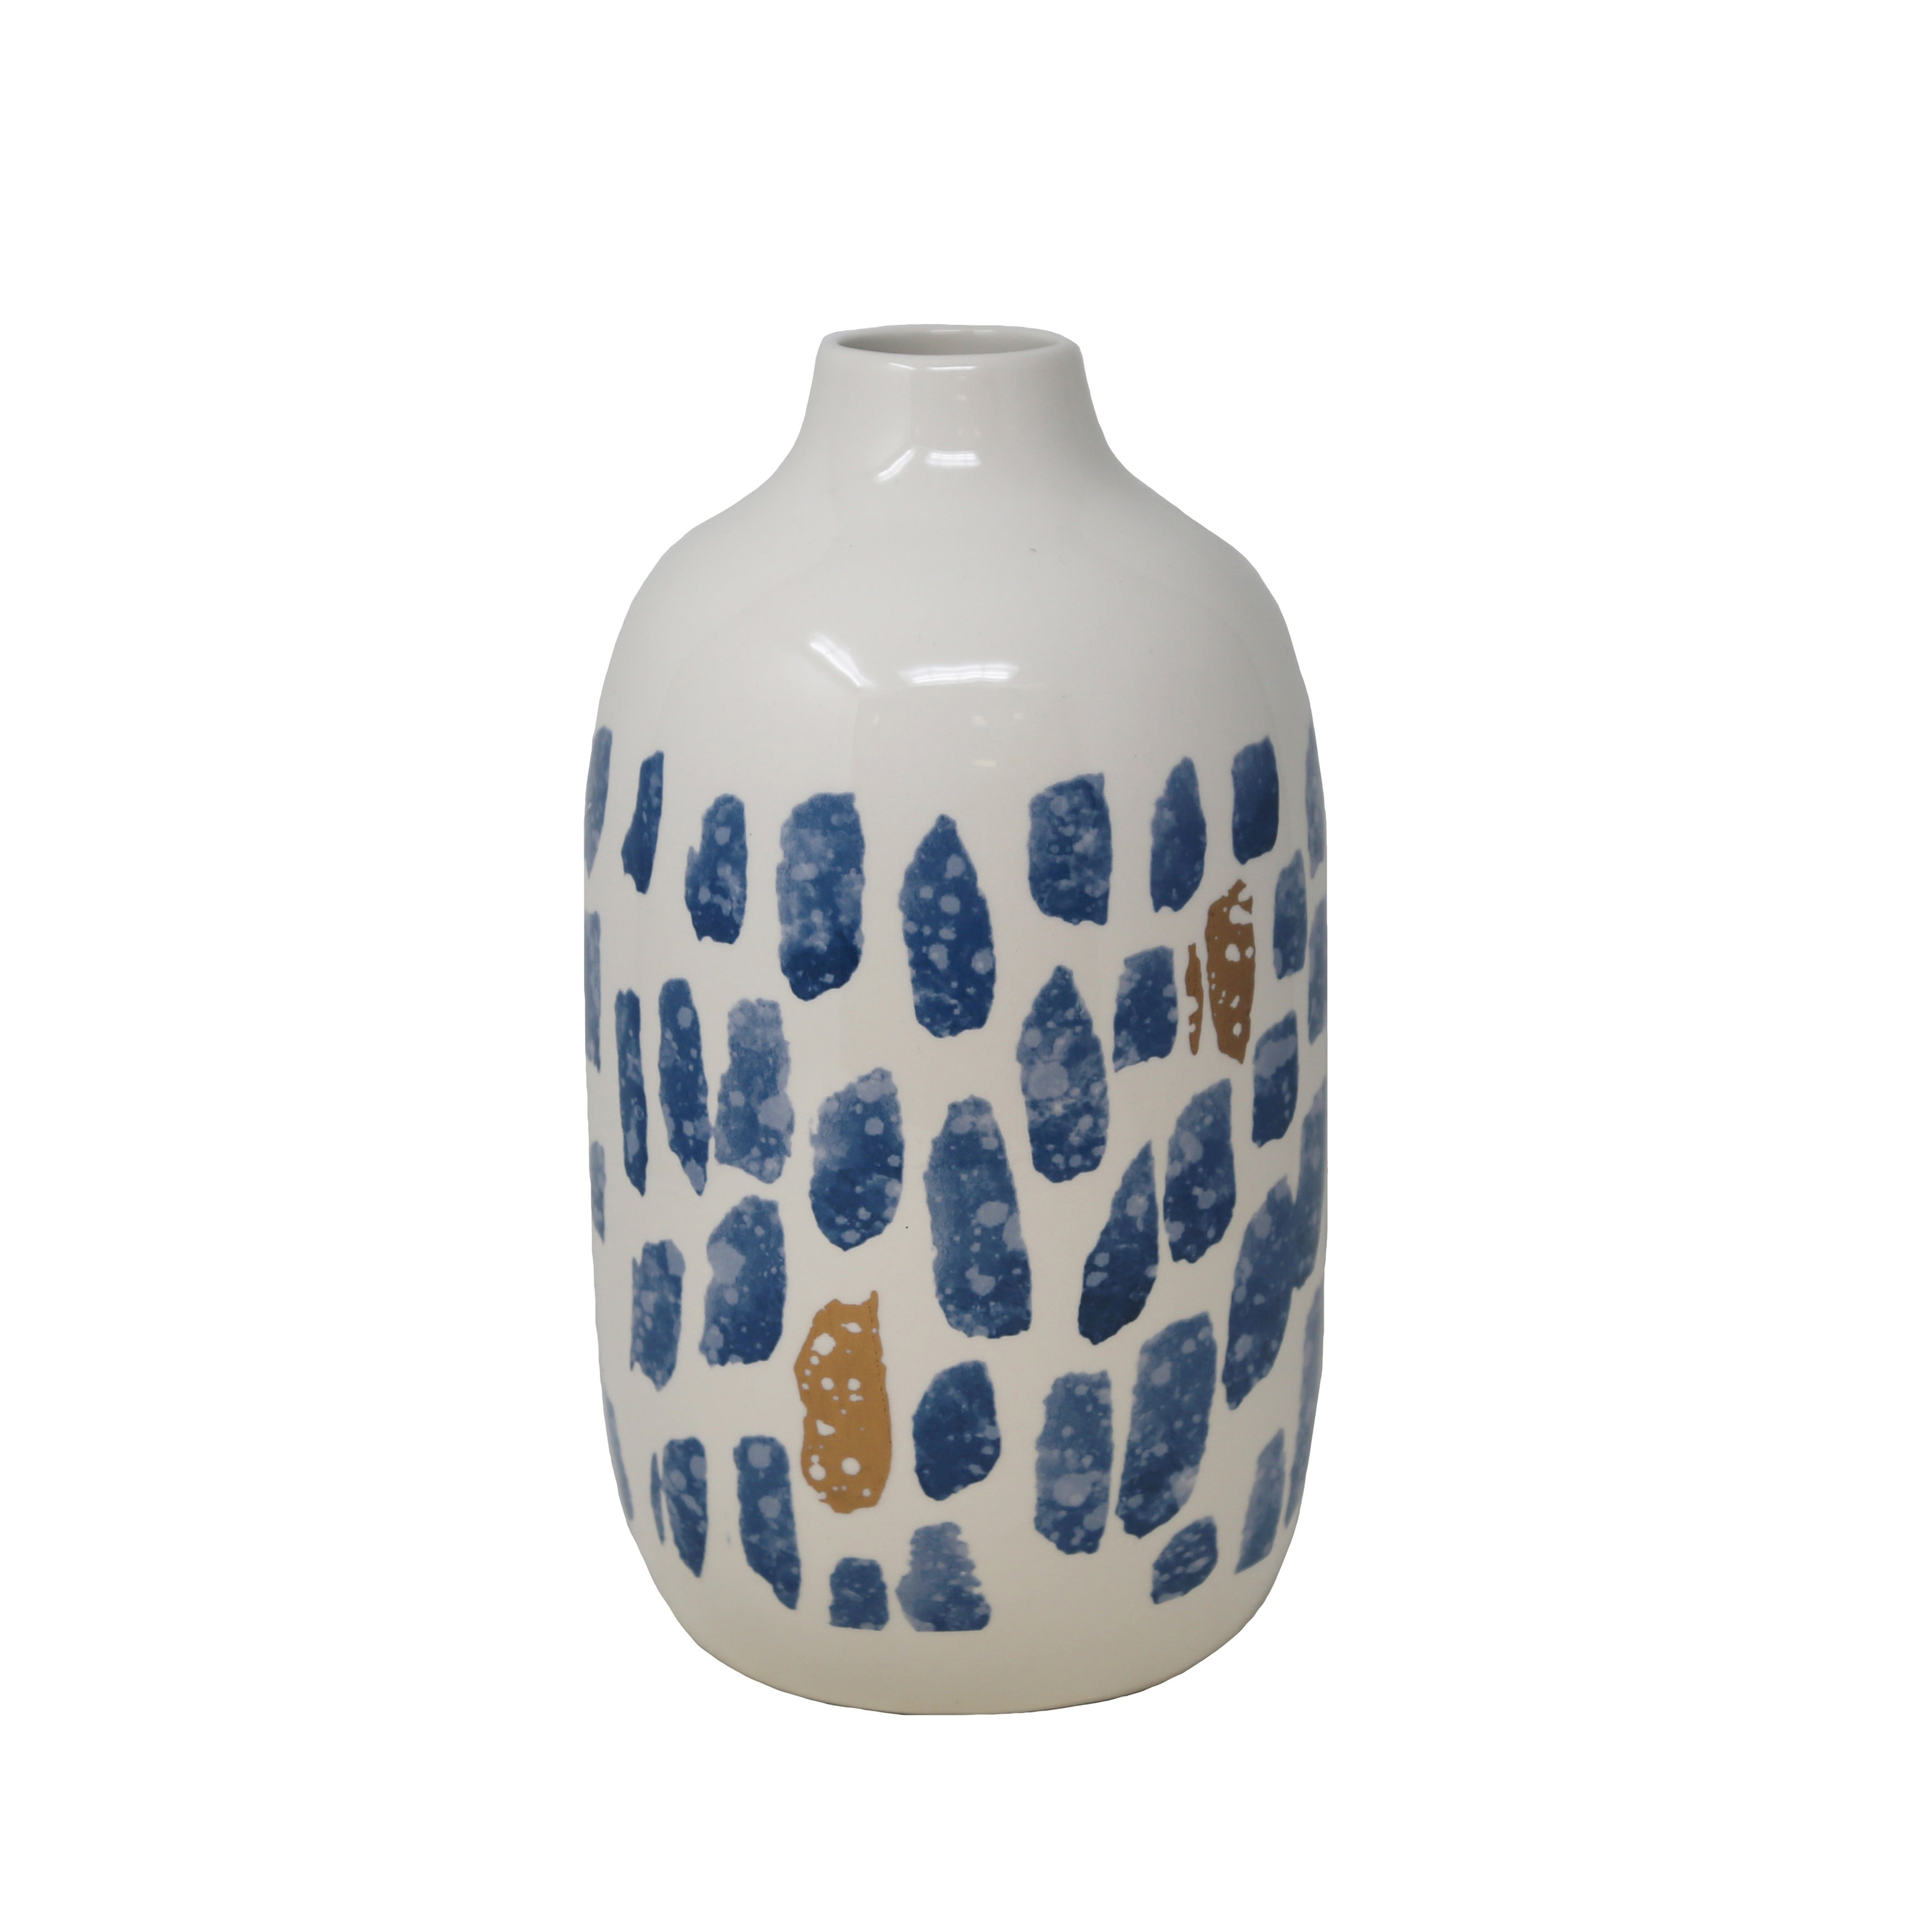 Ceramic  Bottle Shape Vase with Small Open Mouth and Wide Circular Bottom, White and Blue